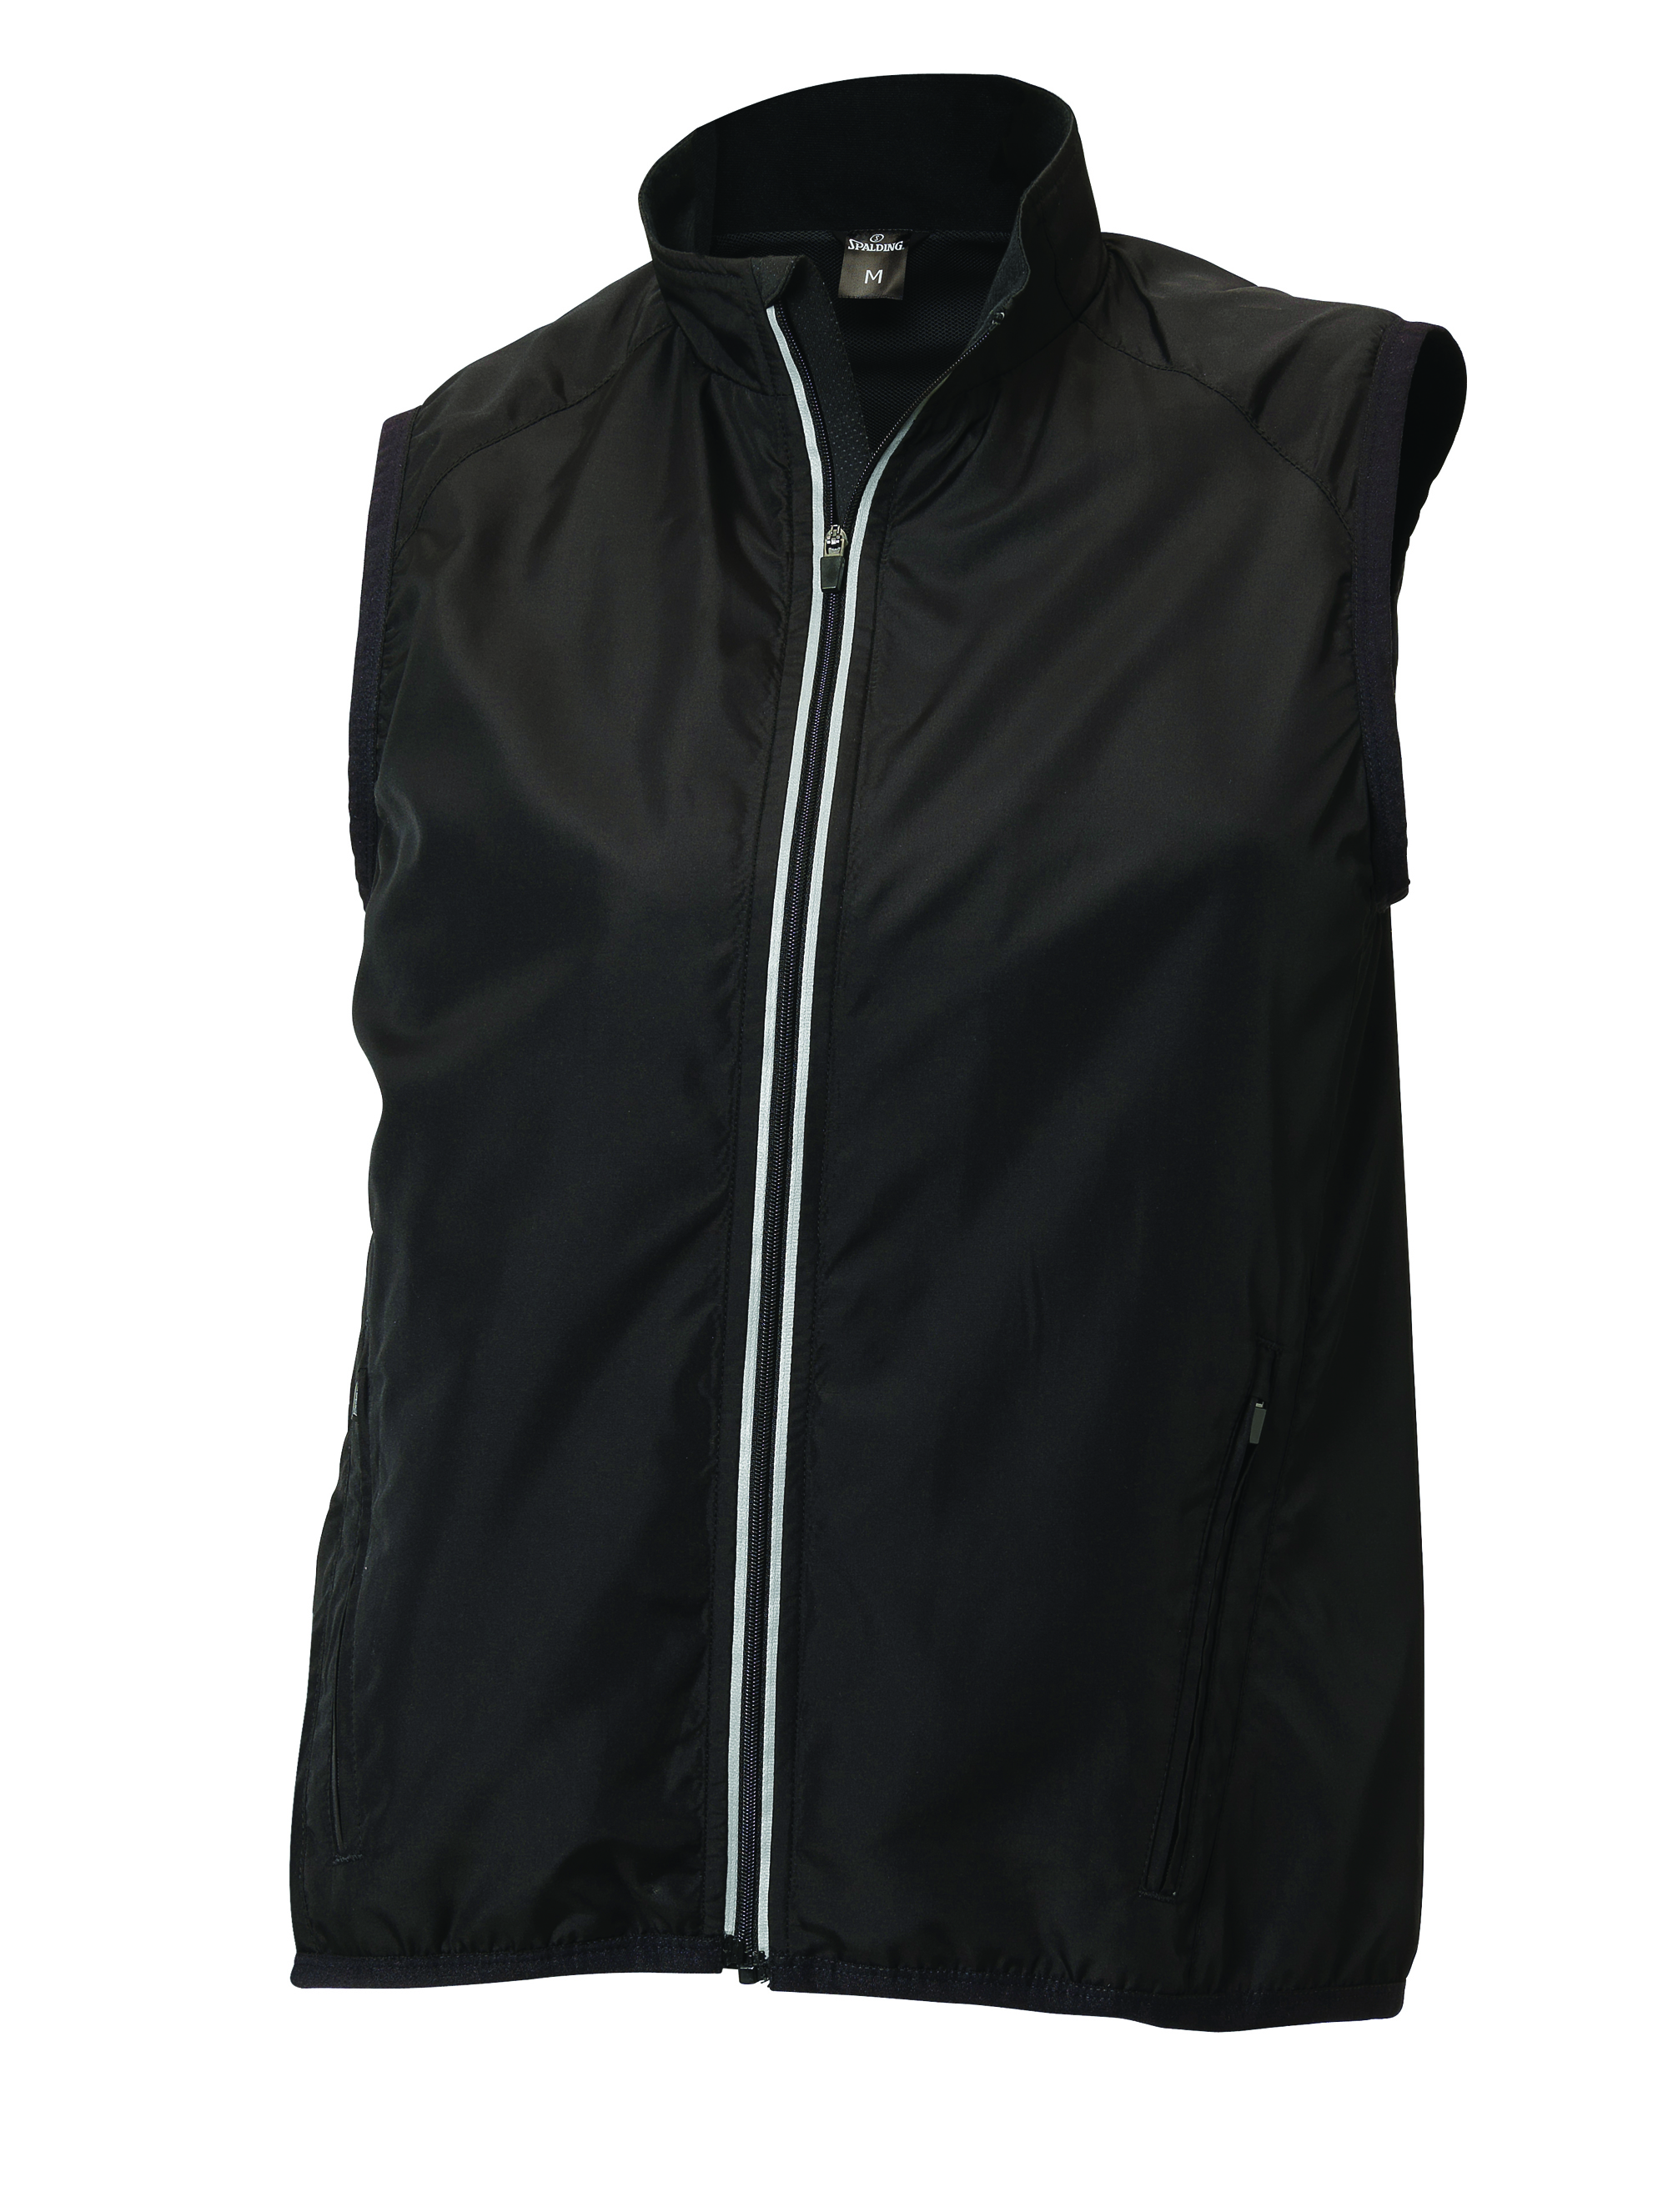 Exhilaration Gilet Women